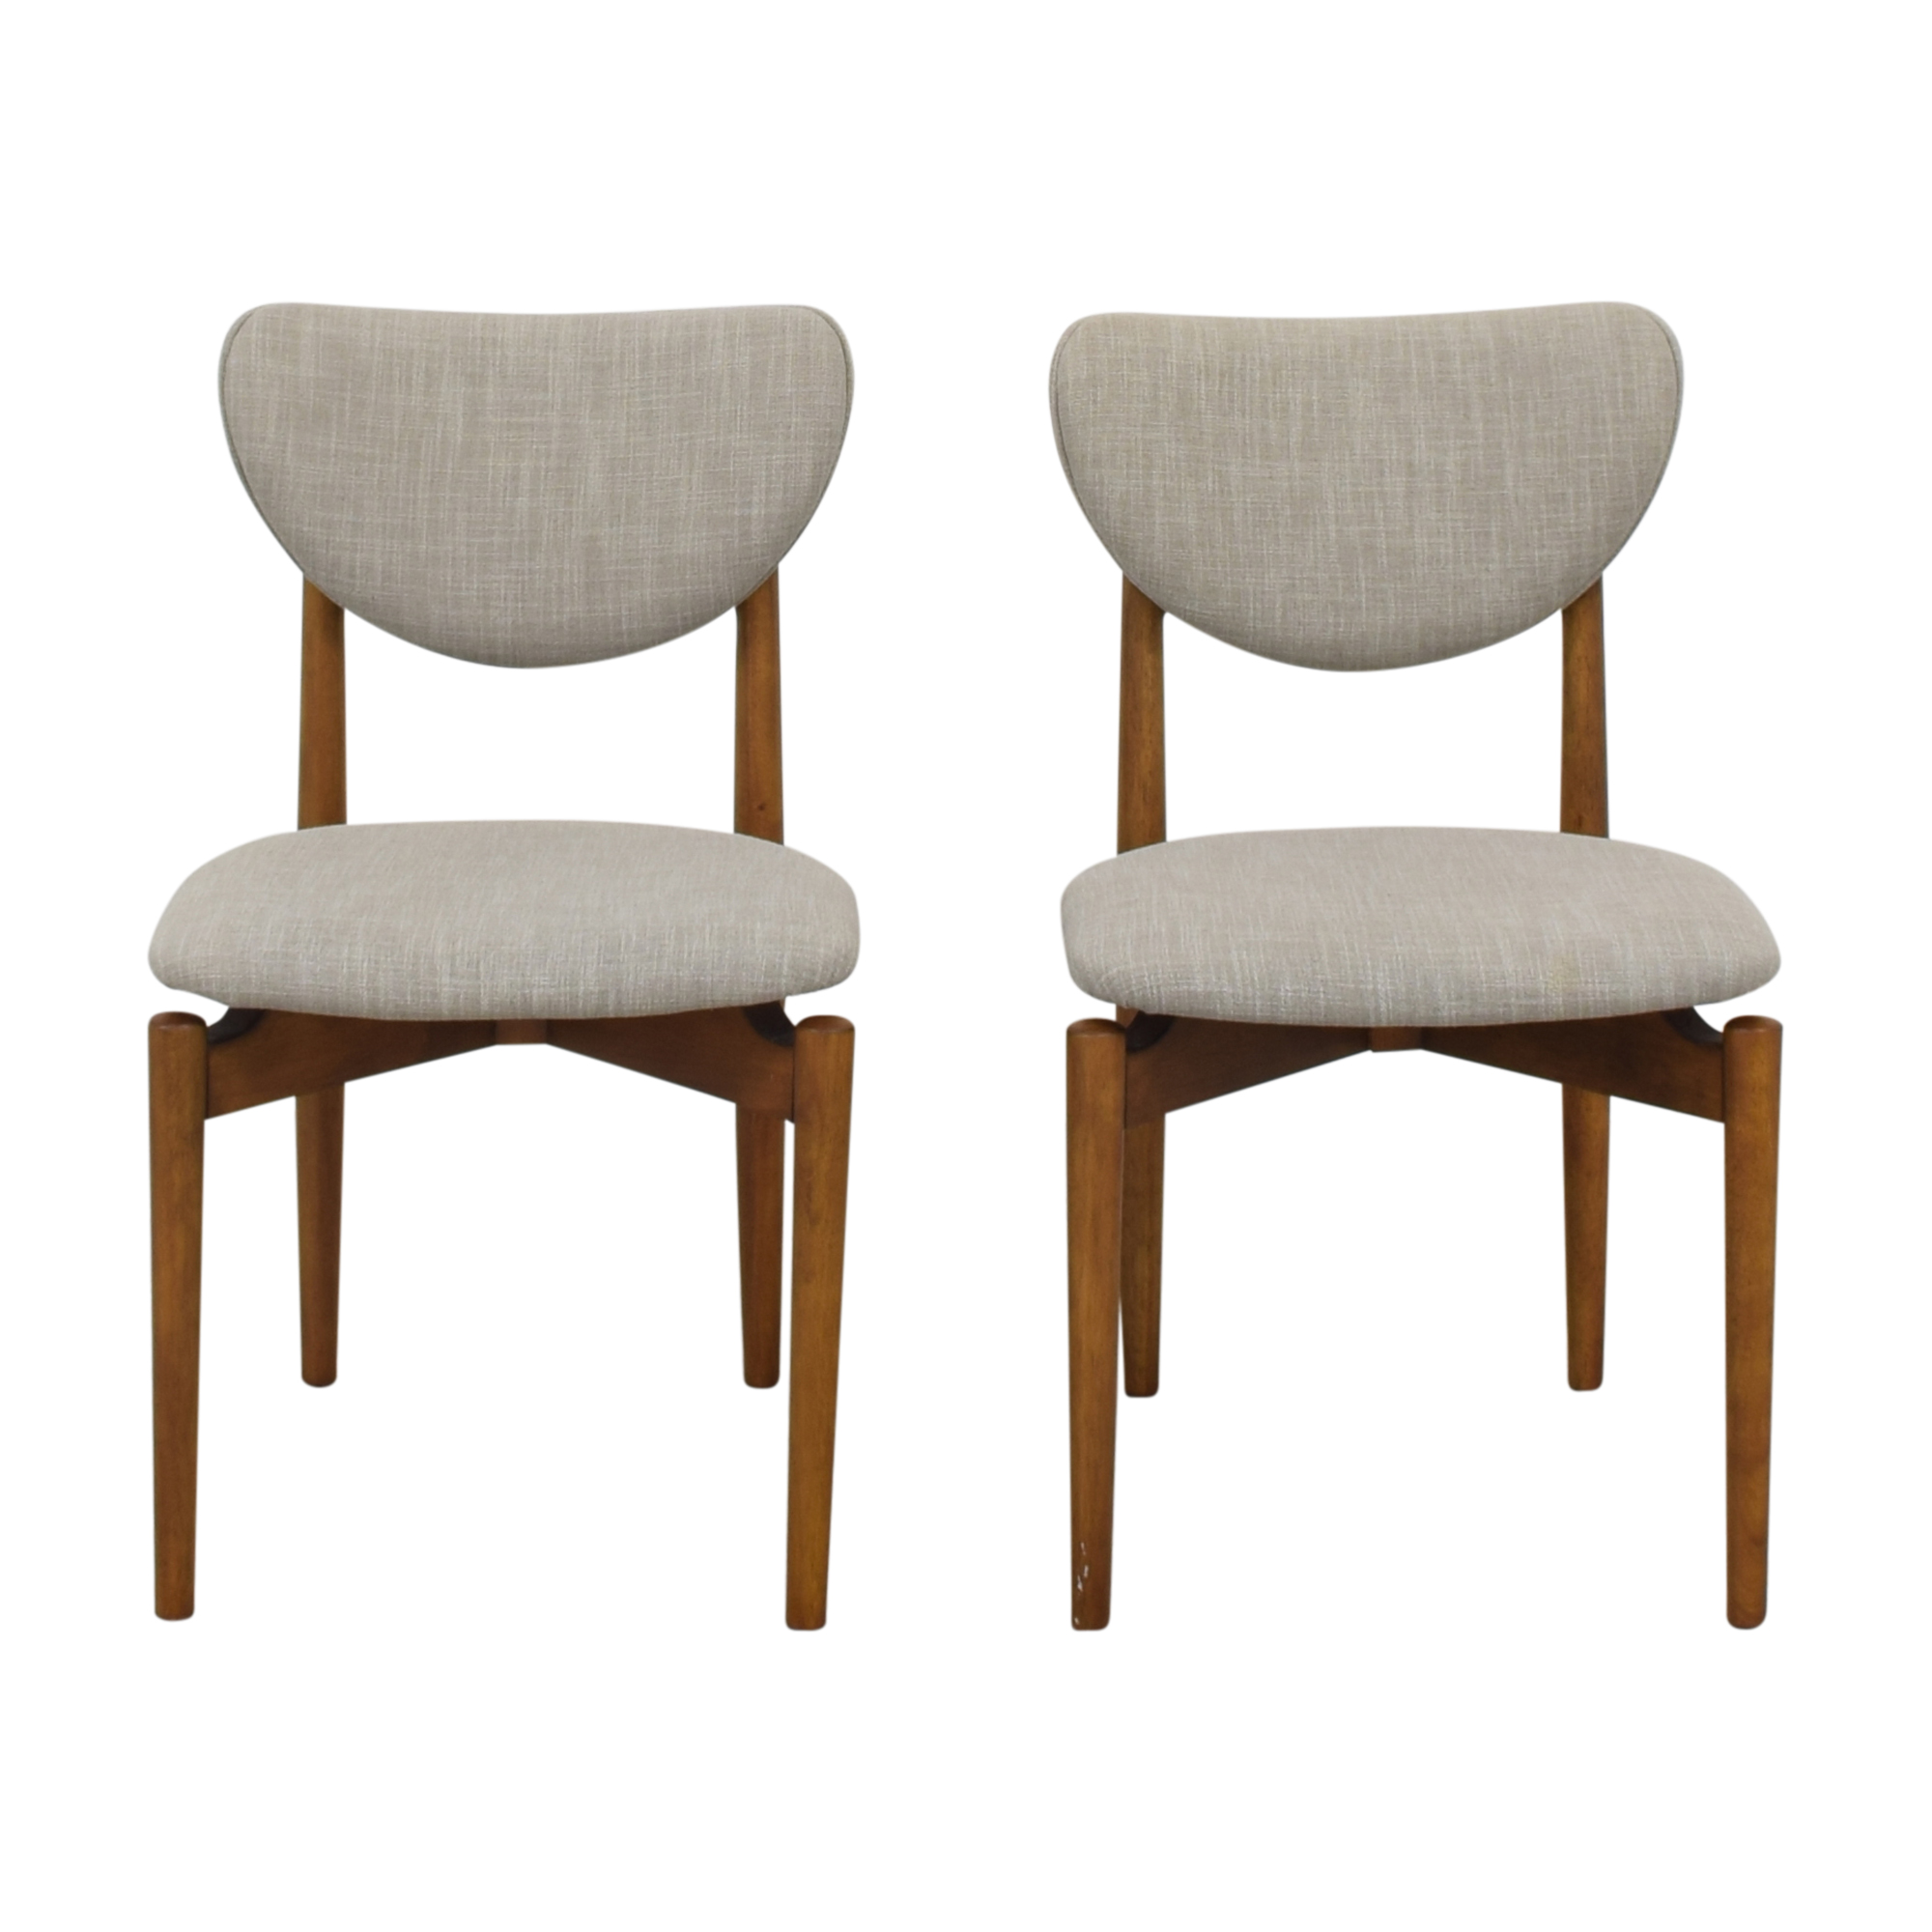 West Elm West Elm Dane Dining Chairs second hand